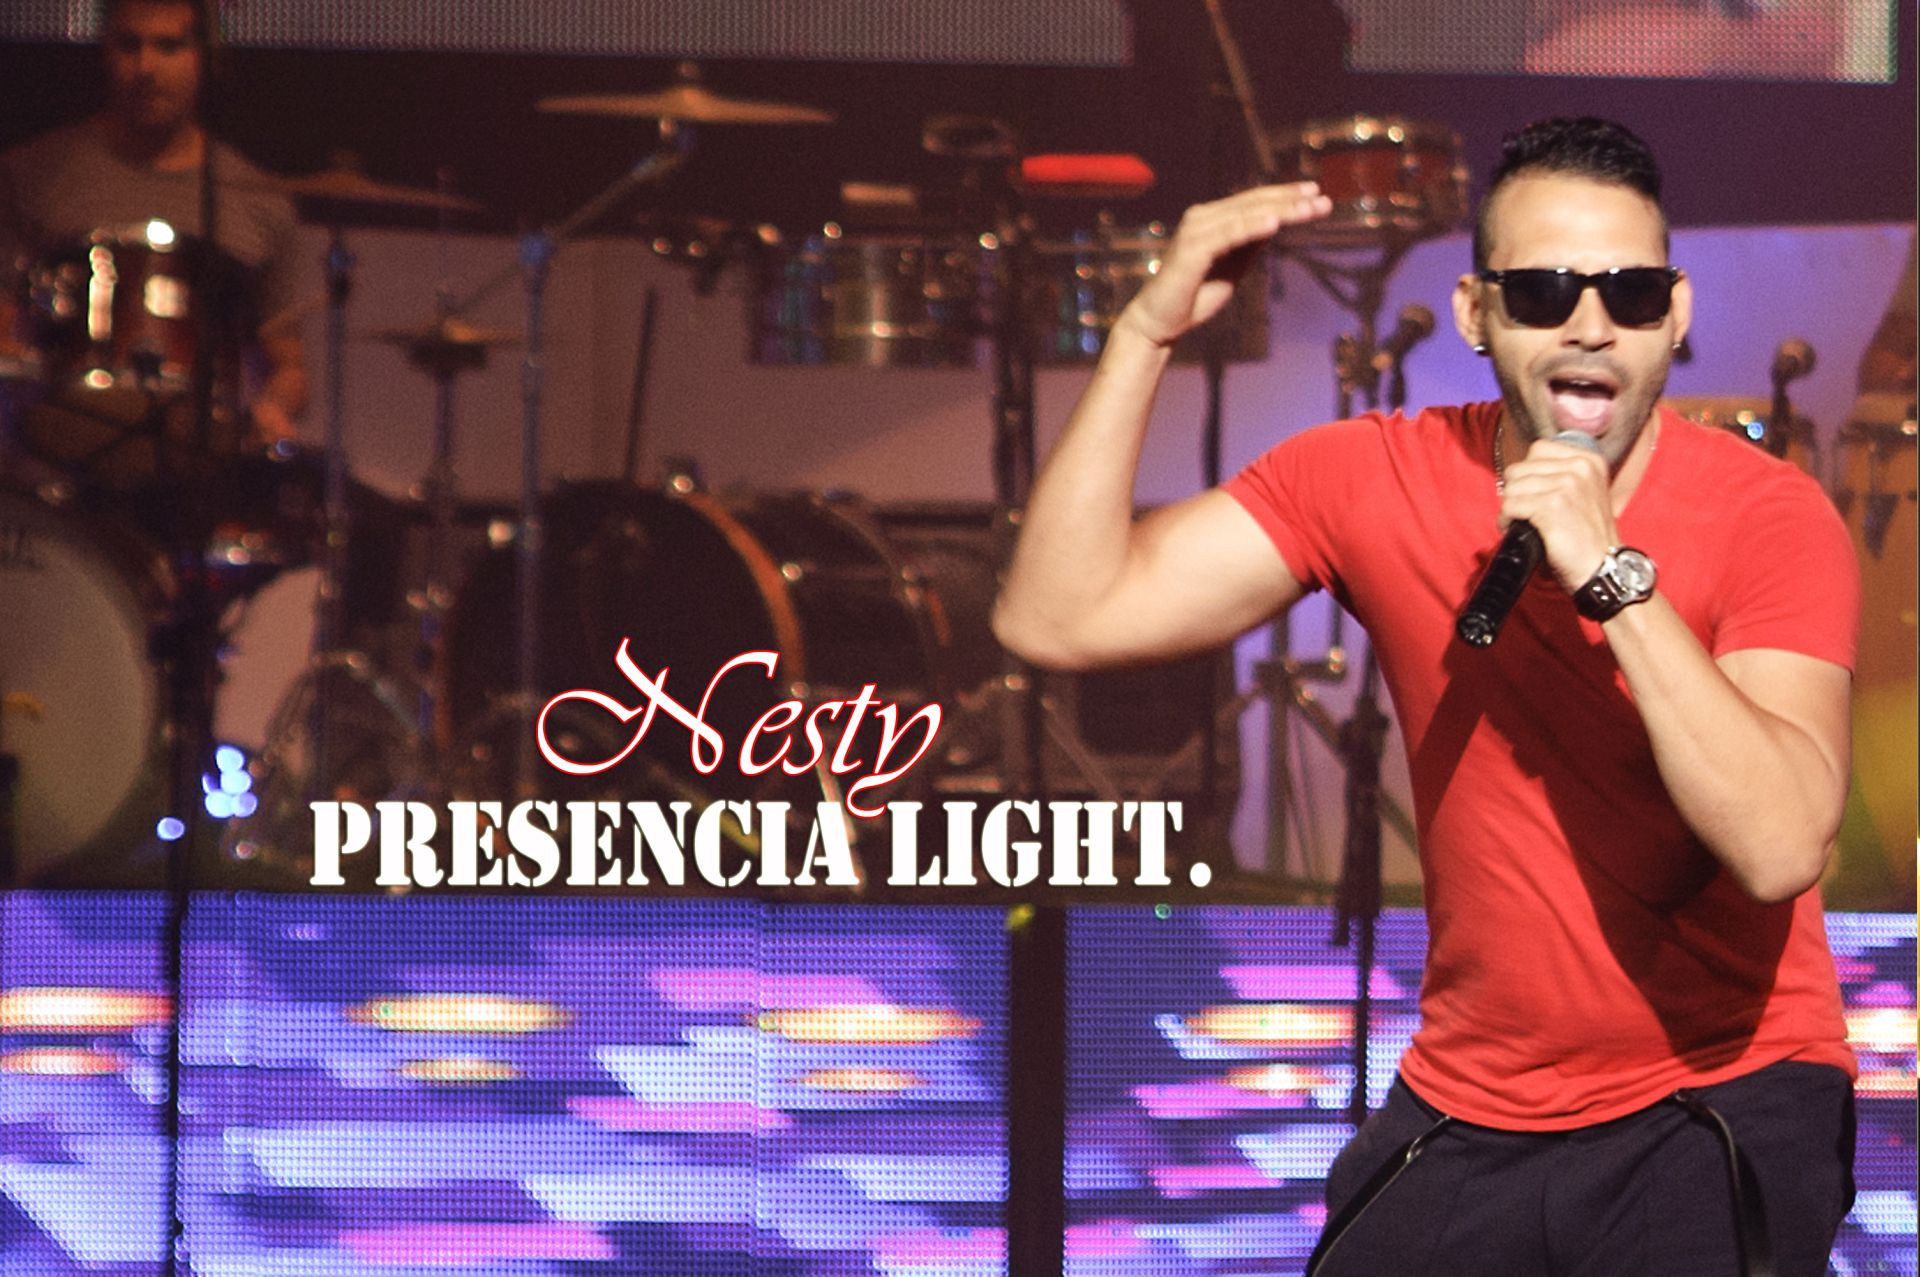 Presencia Light (Nesty & Howie)_Nesty Karl Marx foto 2.jpg